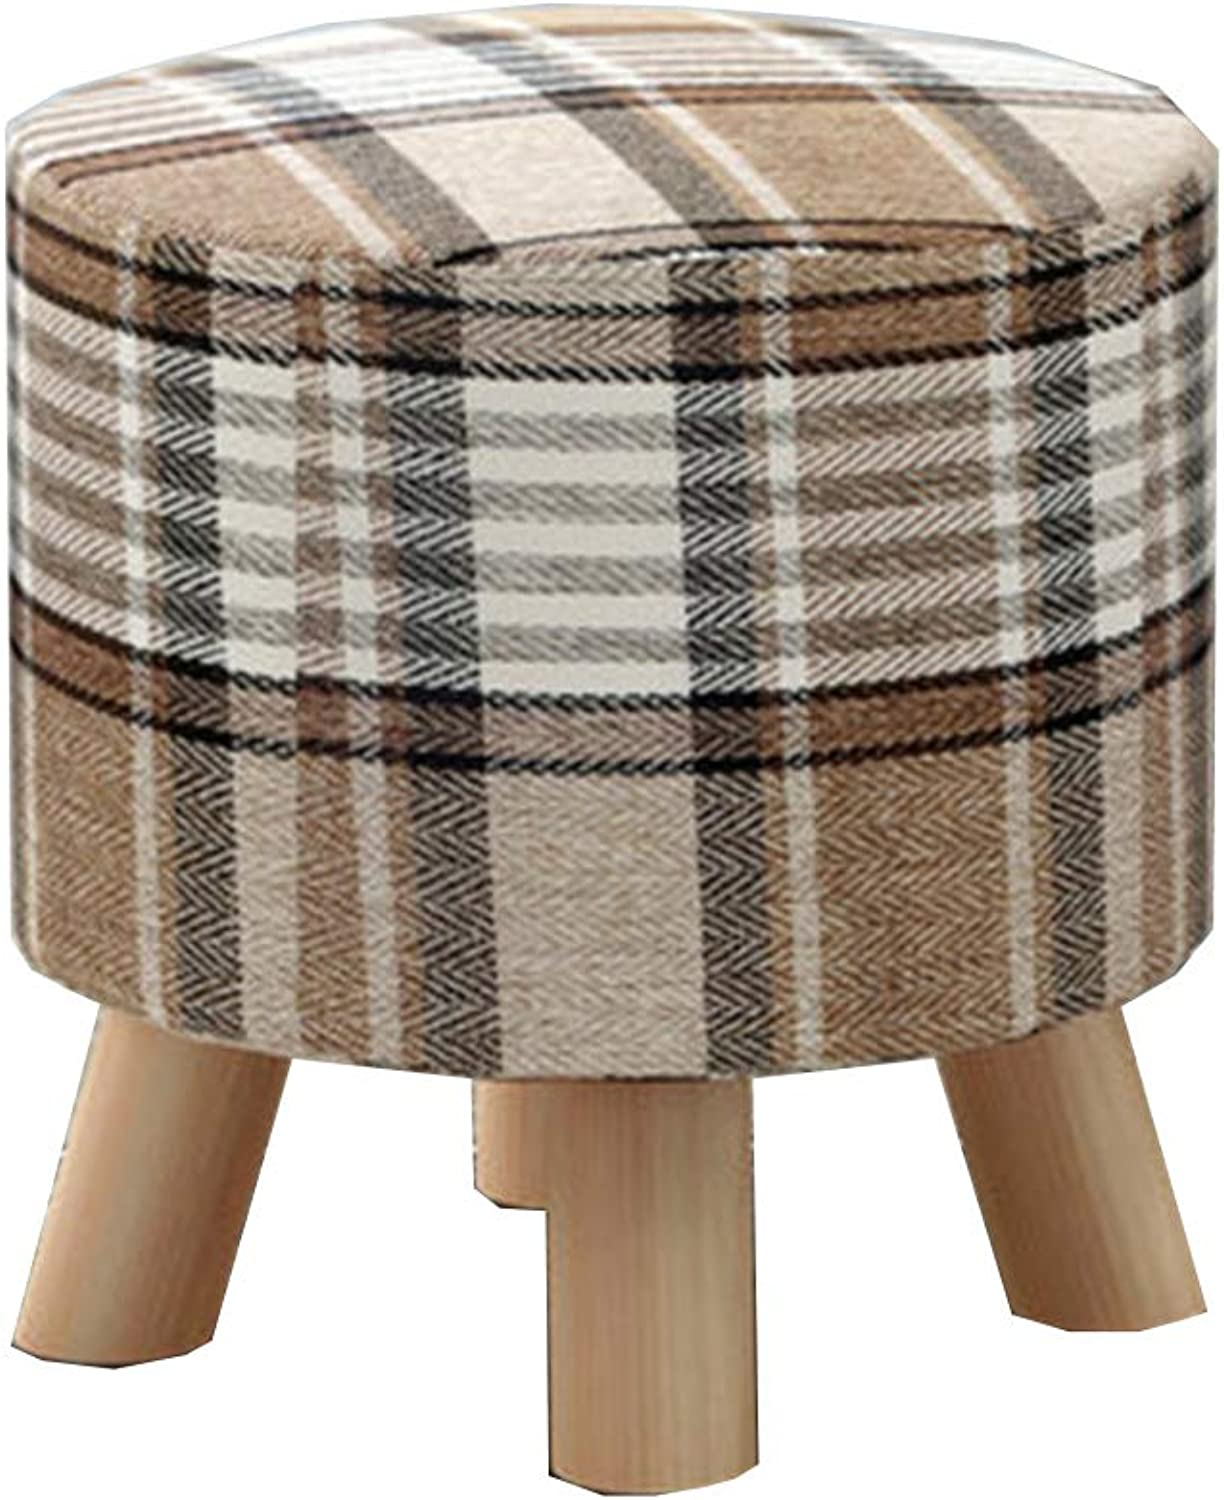 Stool Coffee Table Stool Solid Wood Fabric Stool Cloth Cover Removable Kitchen Bedroom Living Room,E,30  29CM